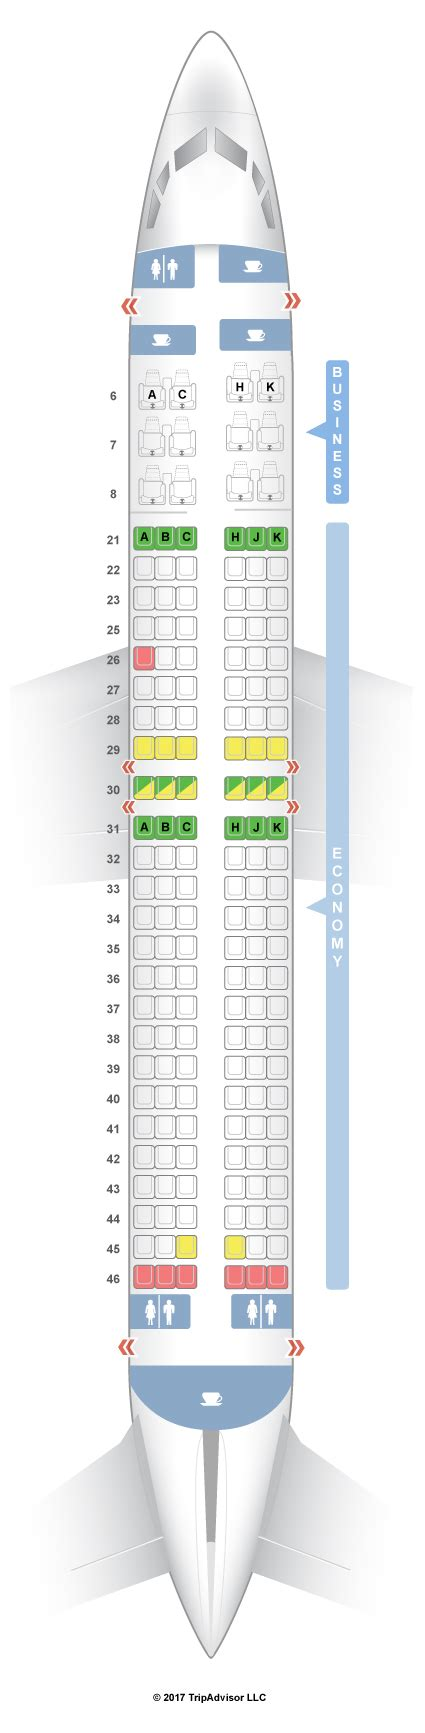 garuda plus seat layout seatguru seat map garuda indonesia boeing 737 800 738